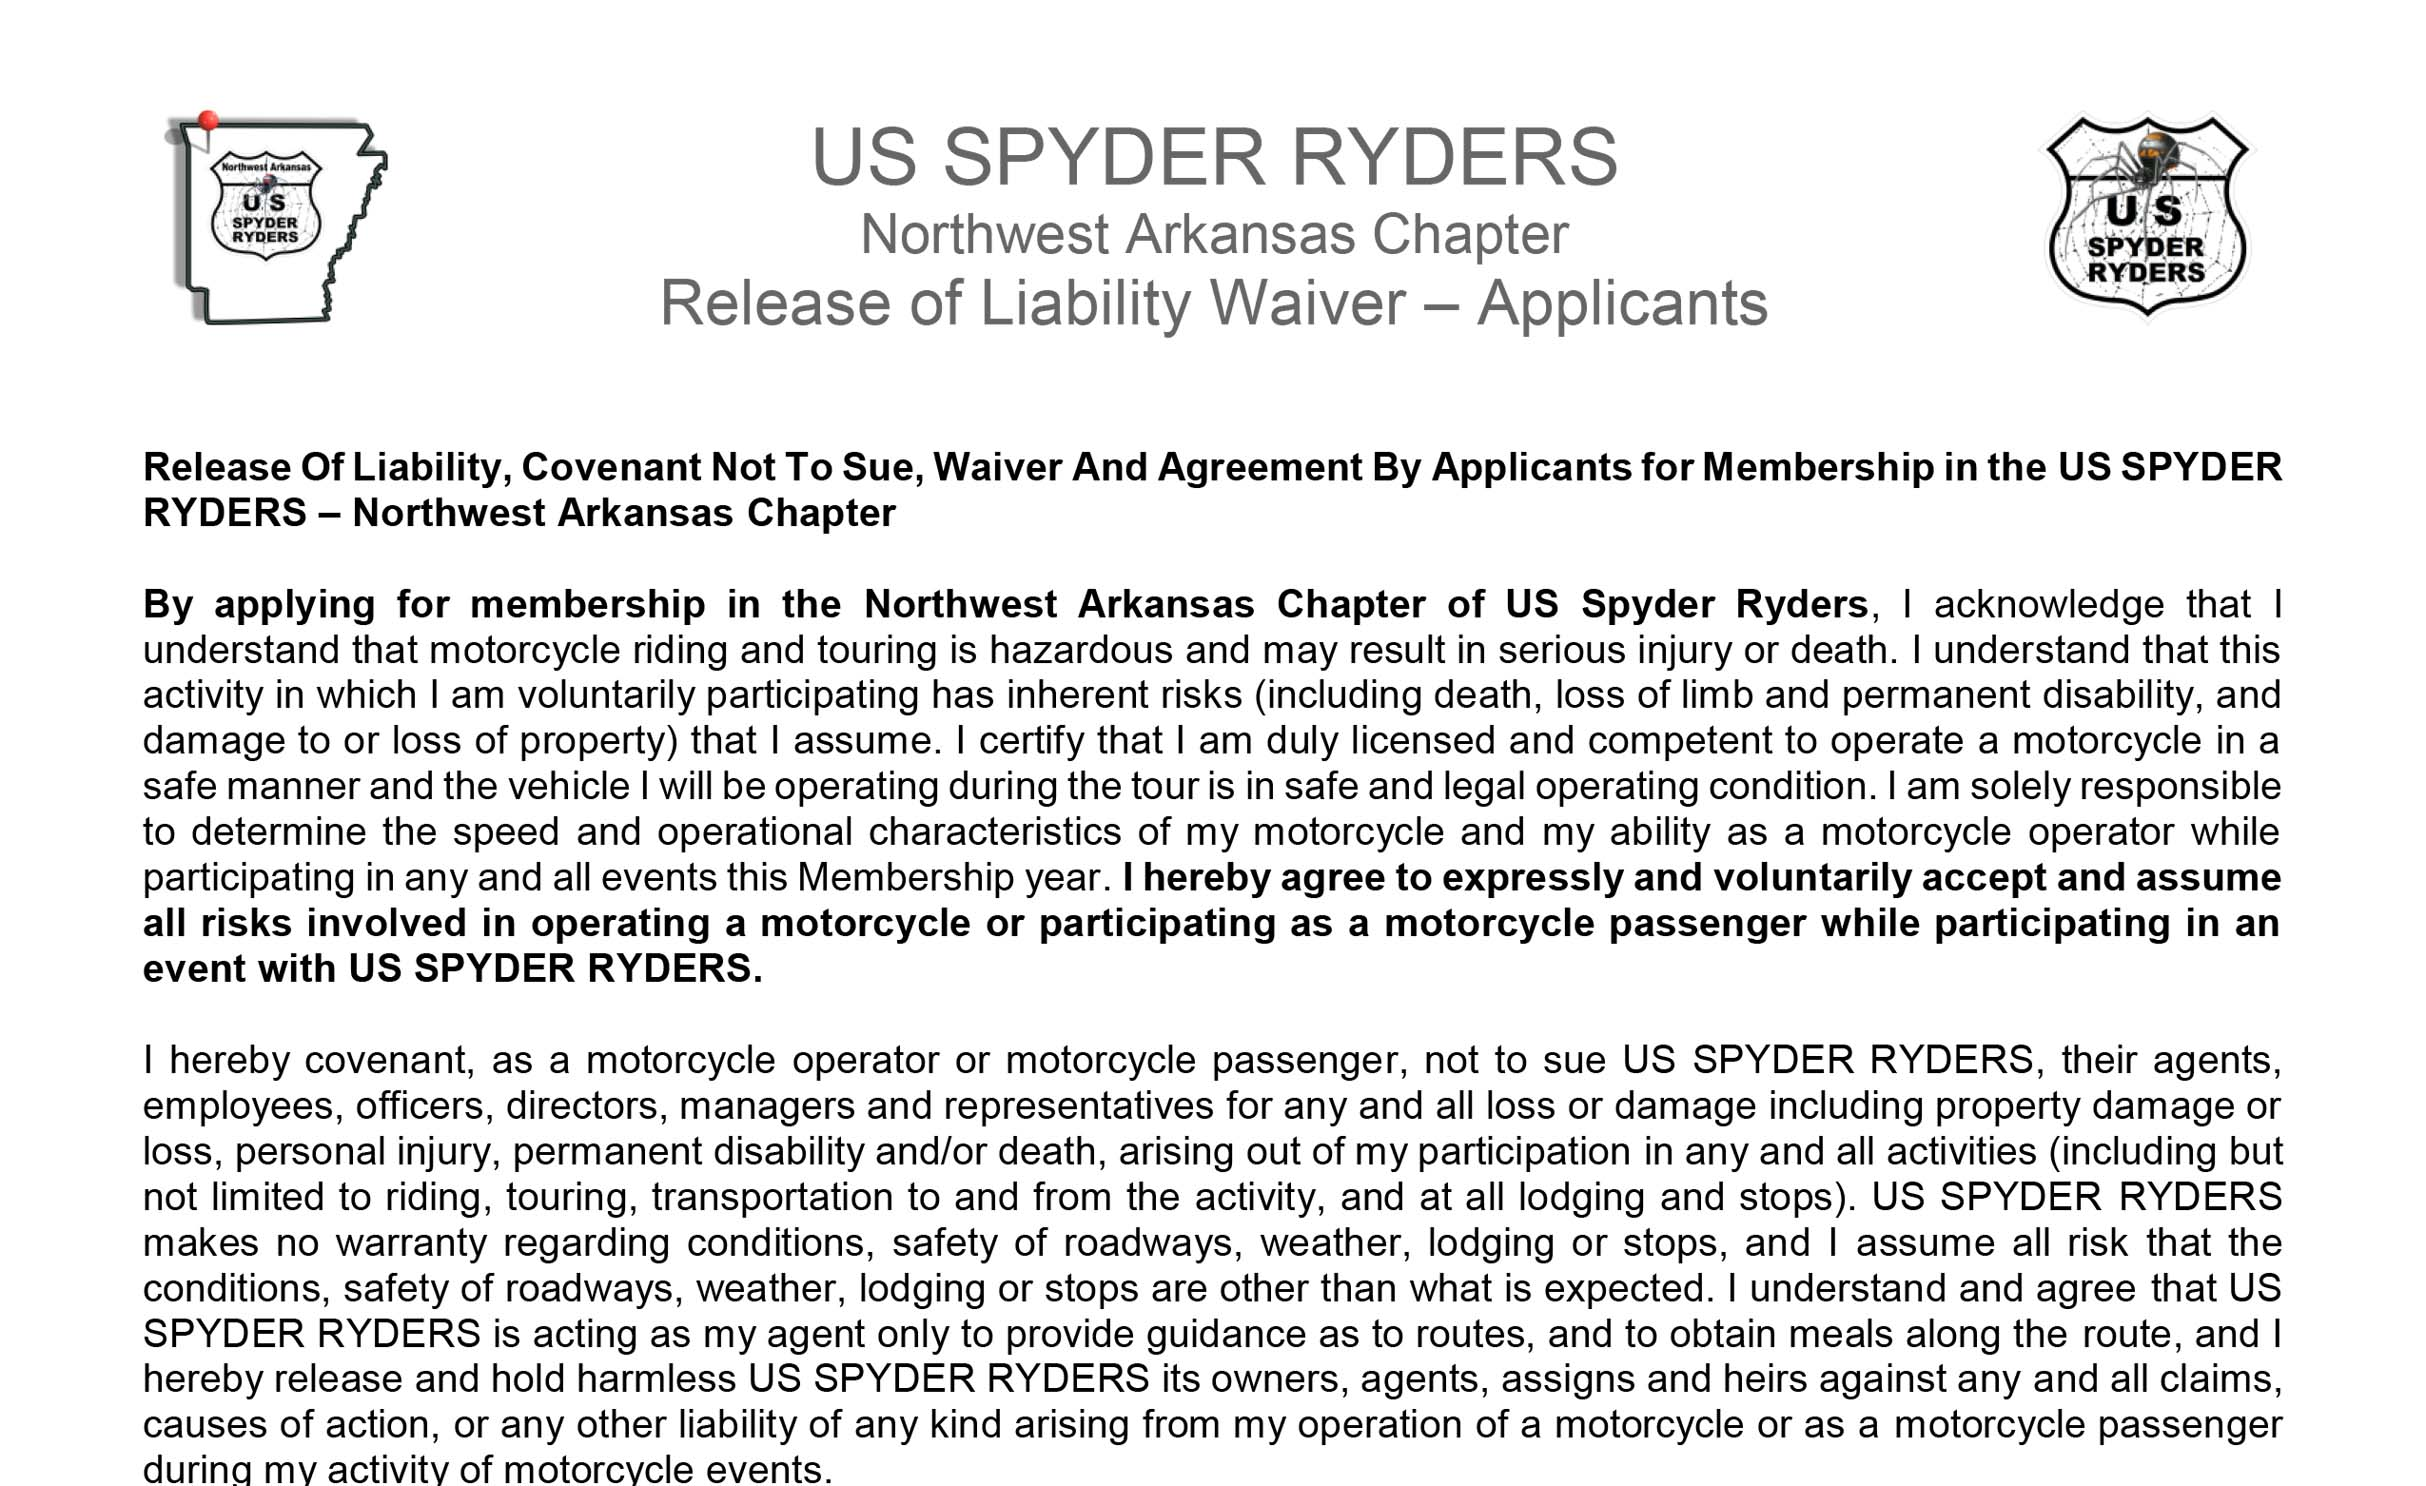 Release Of Liability - Applicant